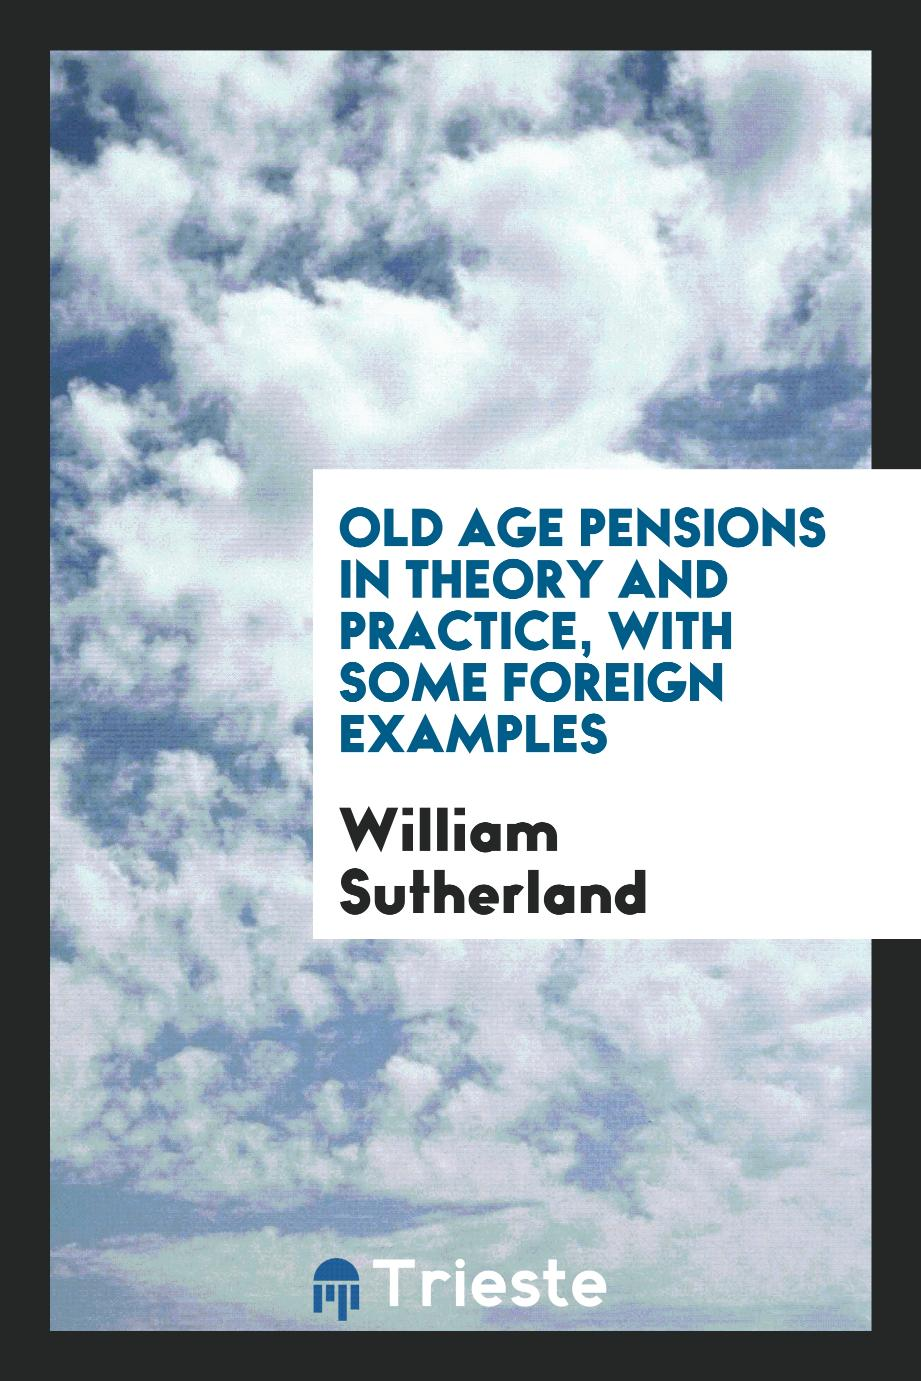 Old age pensions in theory and practice, with some foreign examples